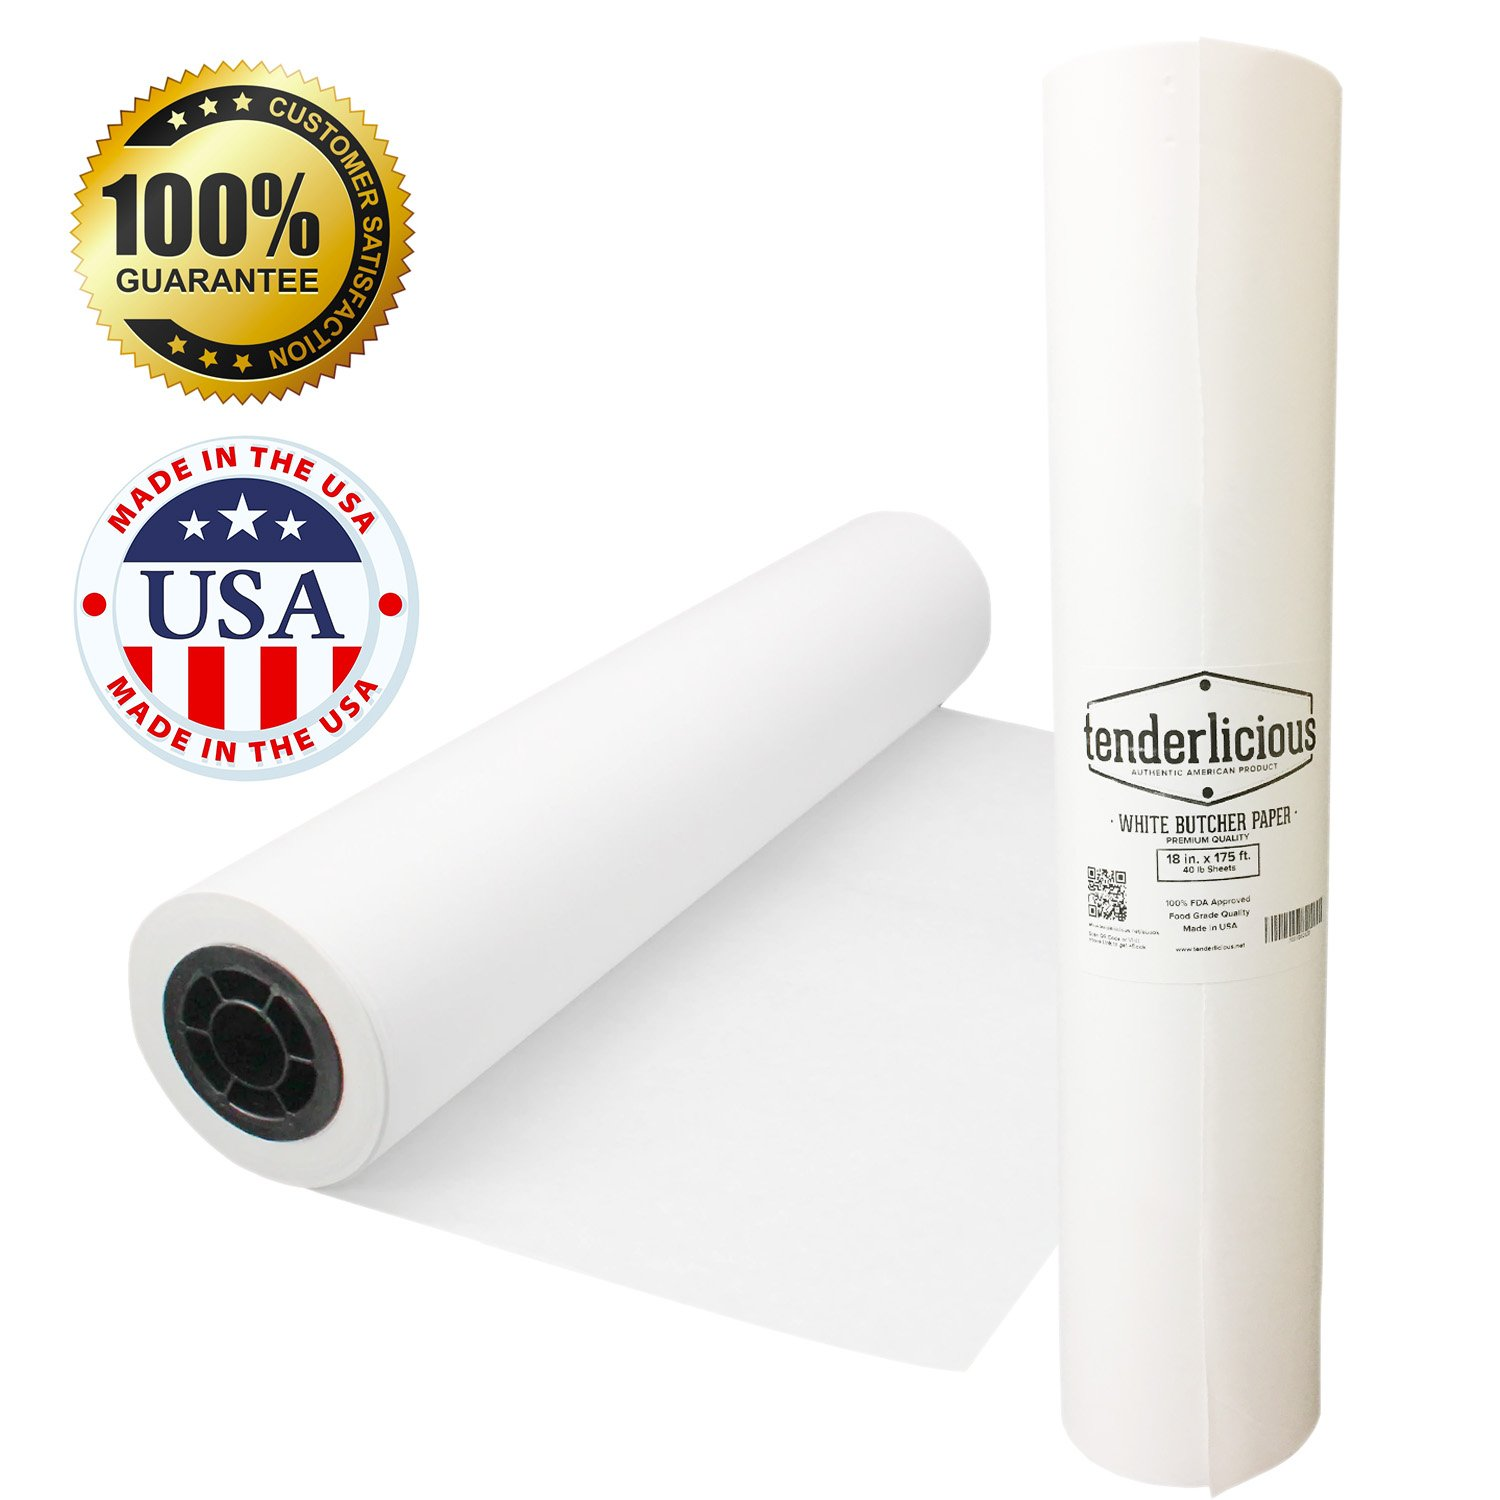 """White Kraft Butcher Paper Roll - 18 """" x 175 ' (2100 """") White Wrapping Paper - USA Made - All Natural FDA Approved Food Grade Paper - Unwaxed and Uncoated"""